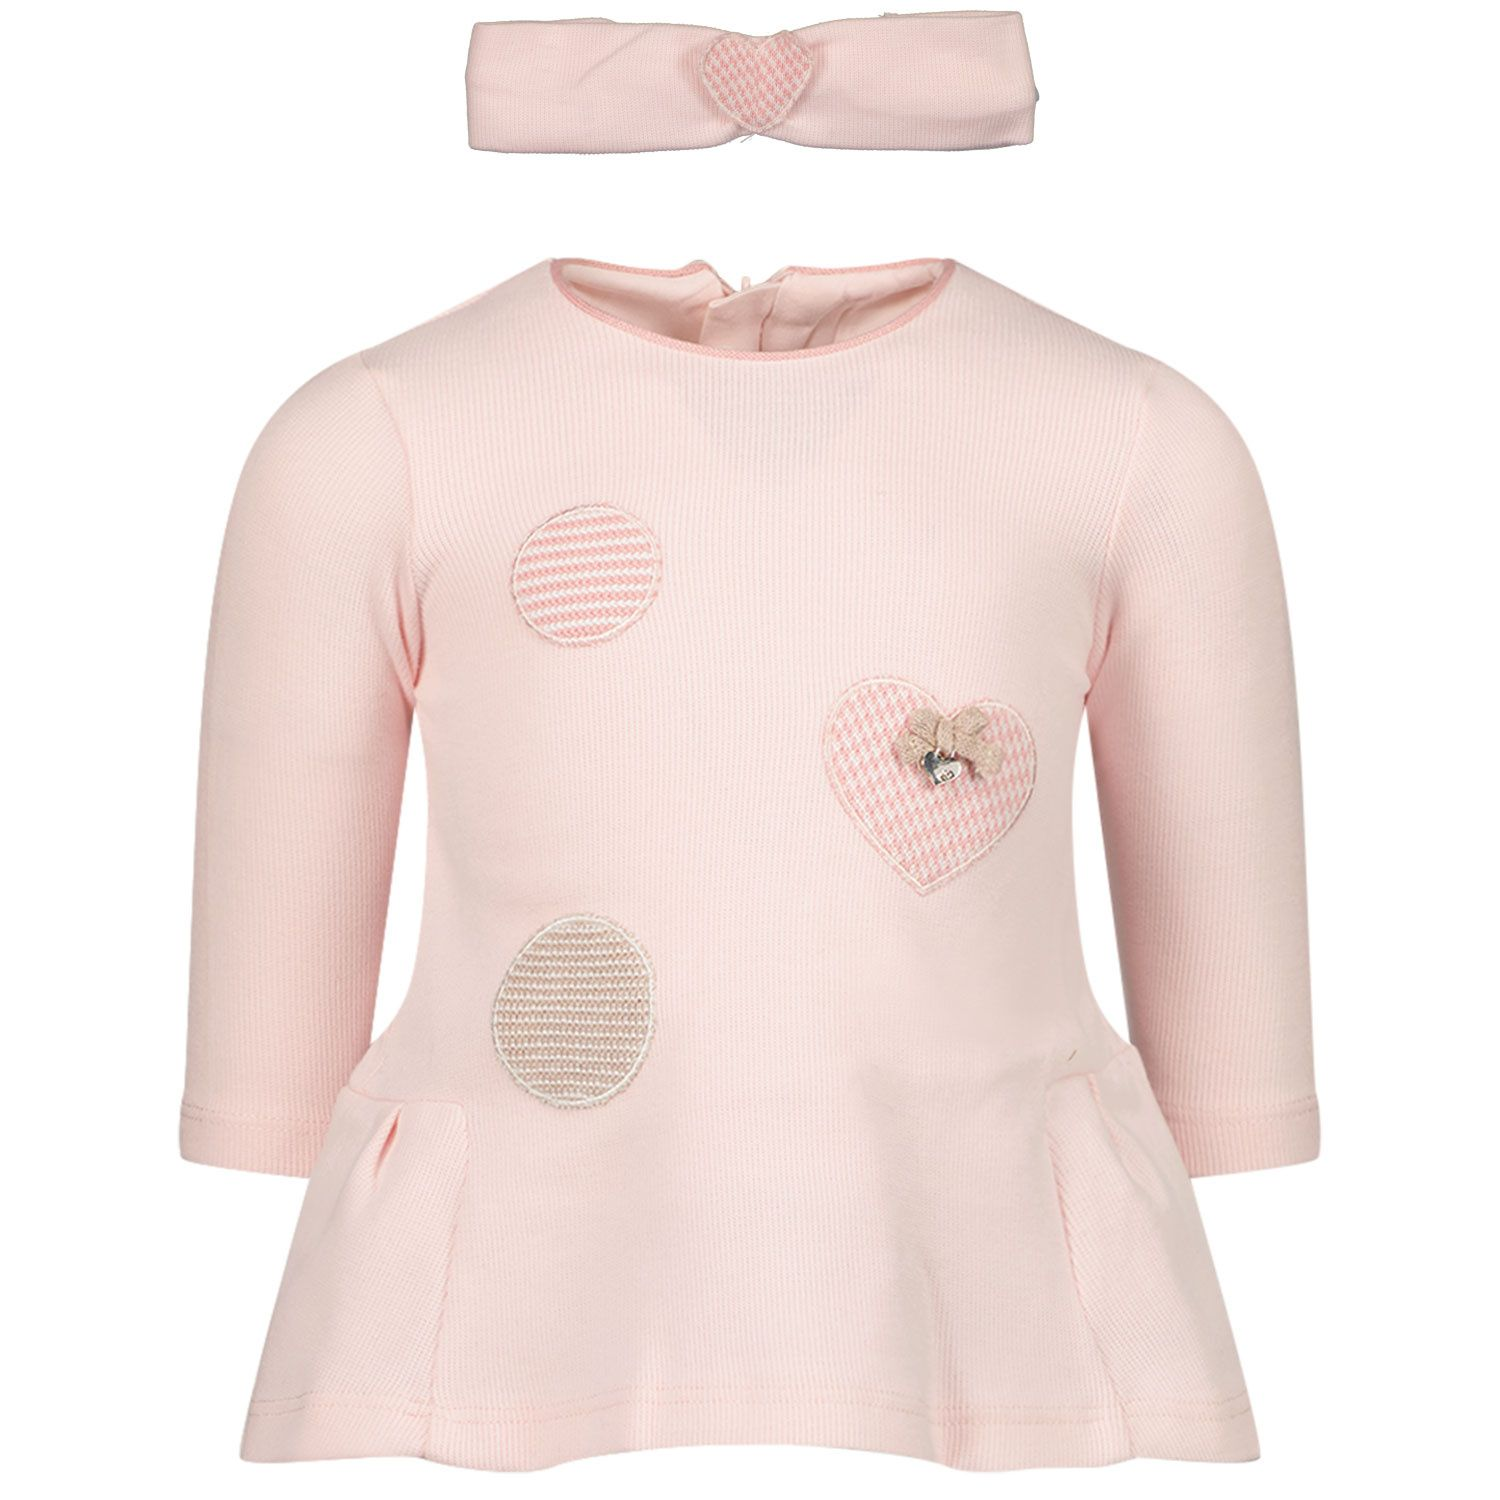 Picture of Mayoral 2802 baby dress light pink